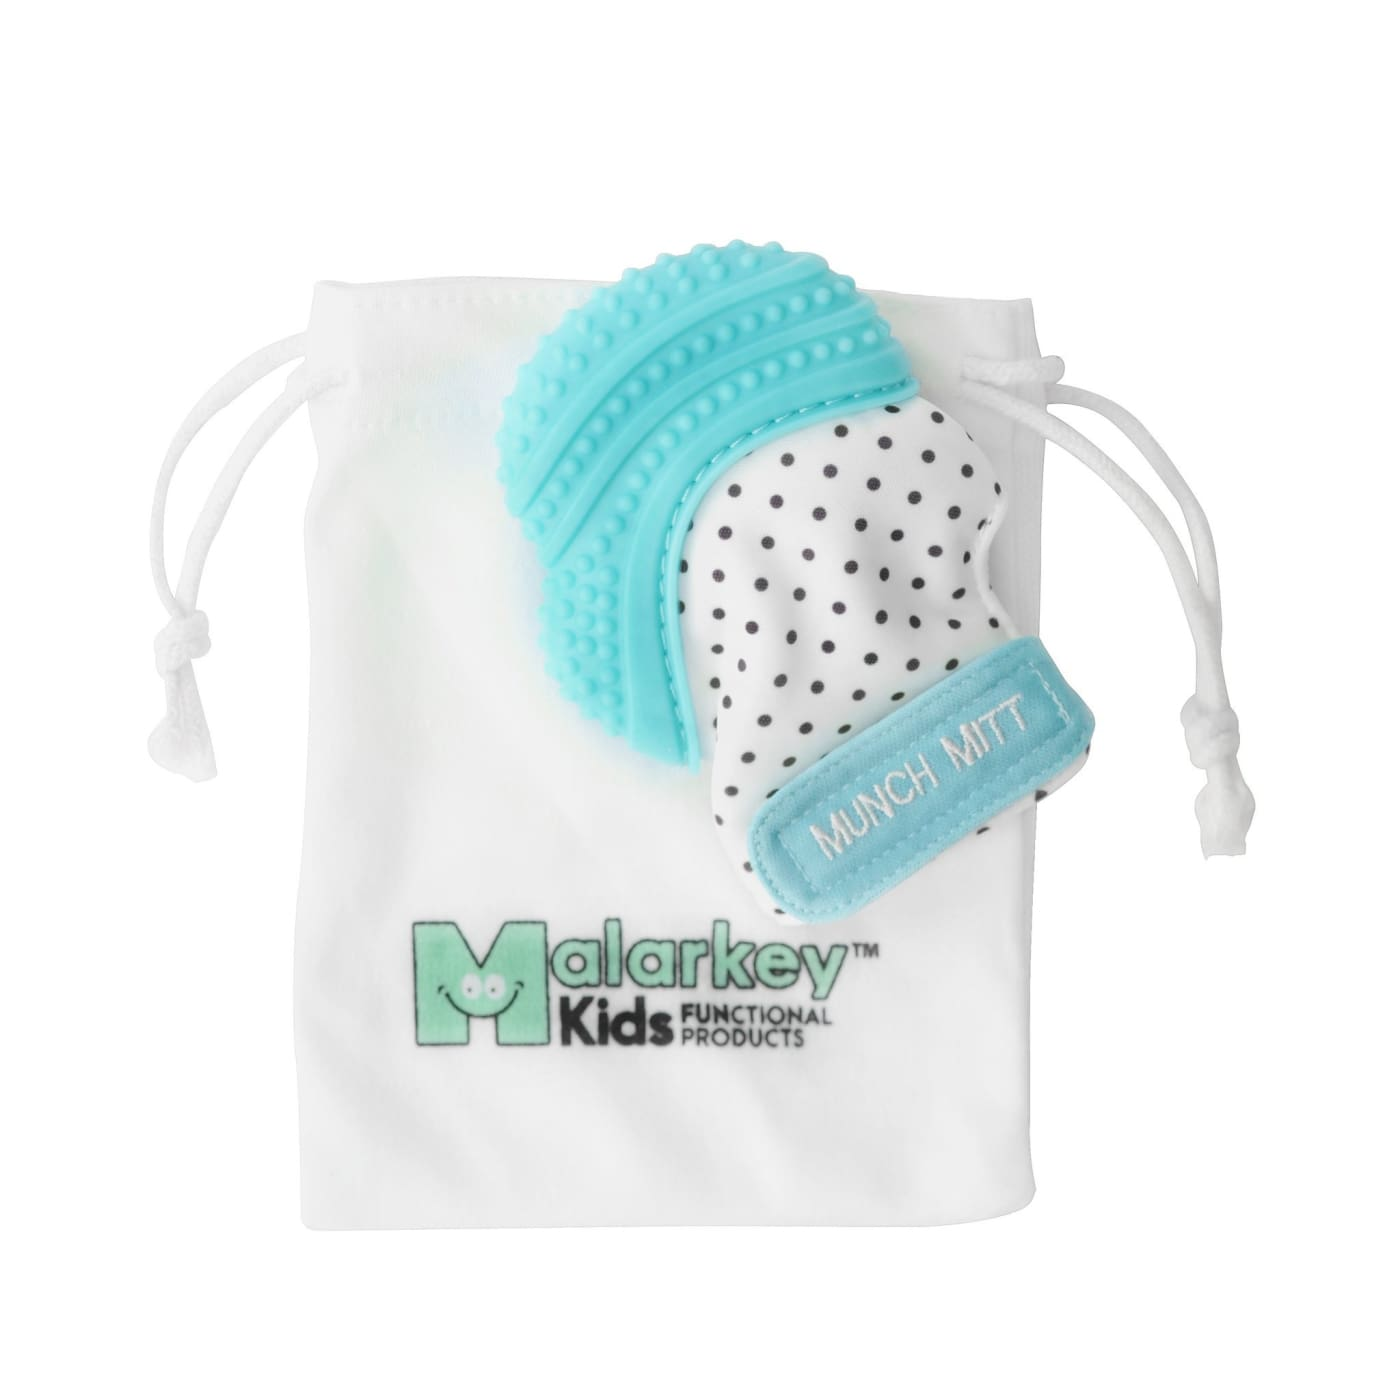 Malarkey Kids Munch Mitt Teething Mitten - Aqua Blue - NURSING & FEEDING - TEETHERS/TEETHING JEWELLERY